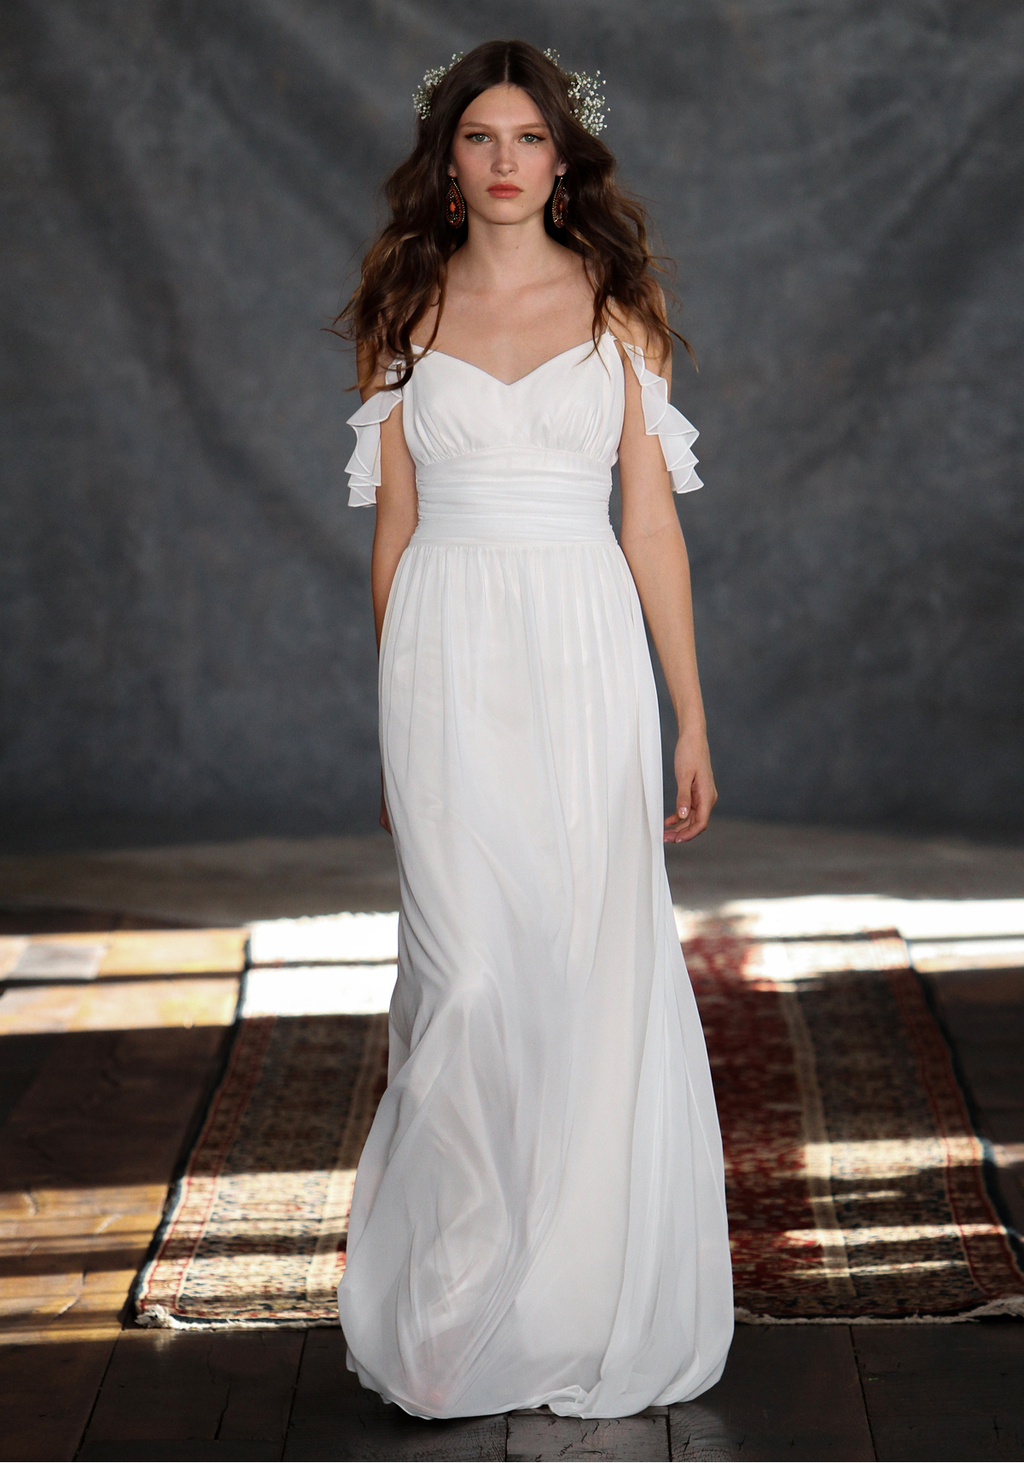 Ceylon_wedding_dress_from_claire_pettibones_romantique_collection.full